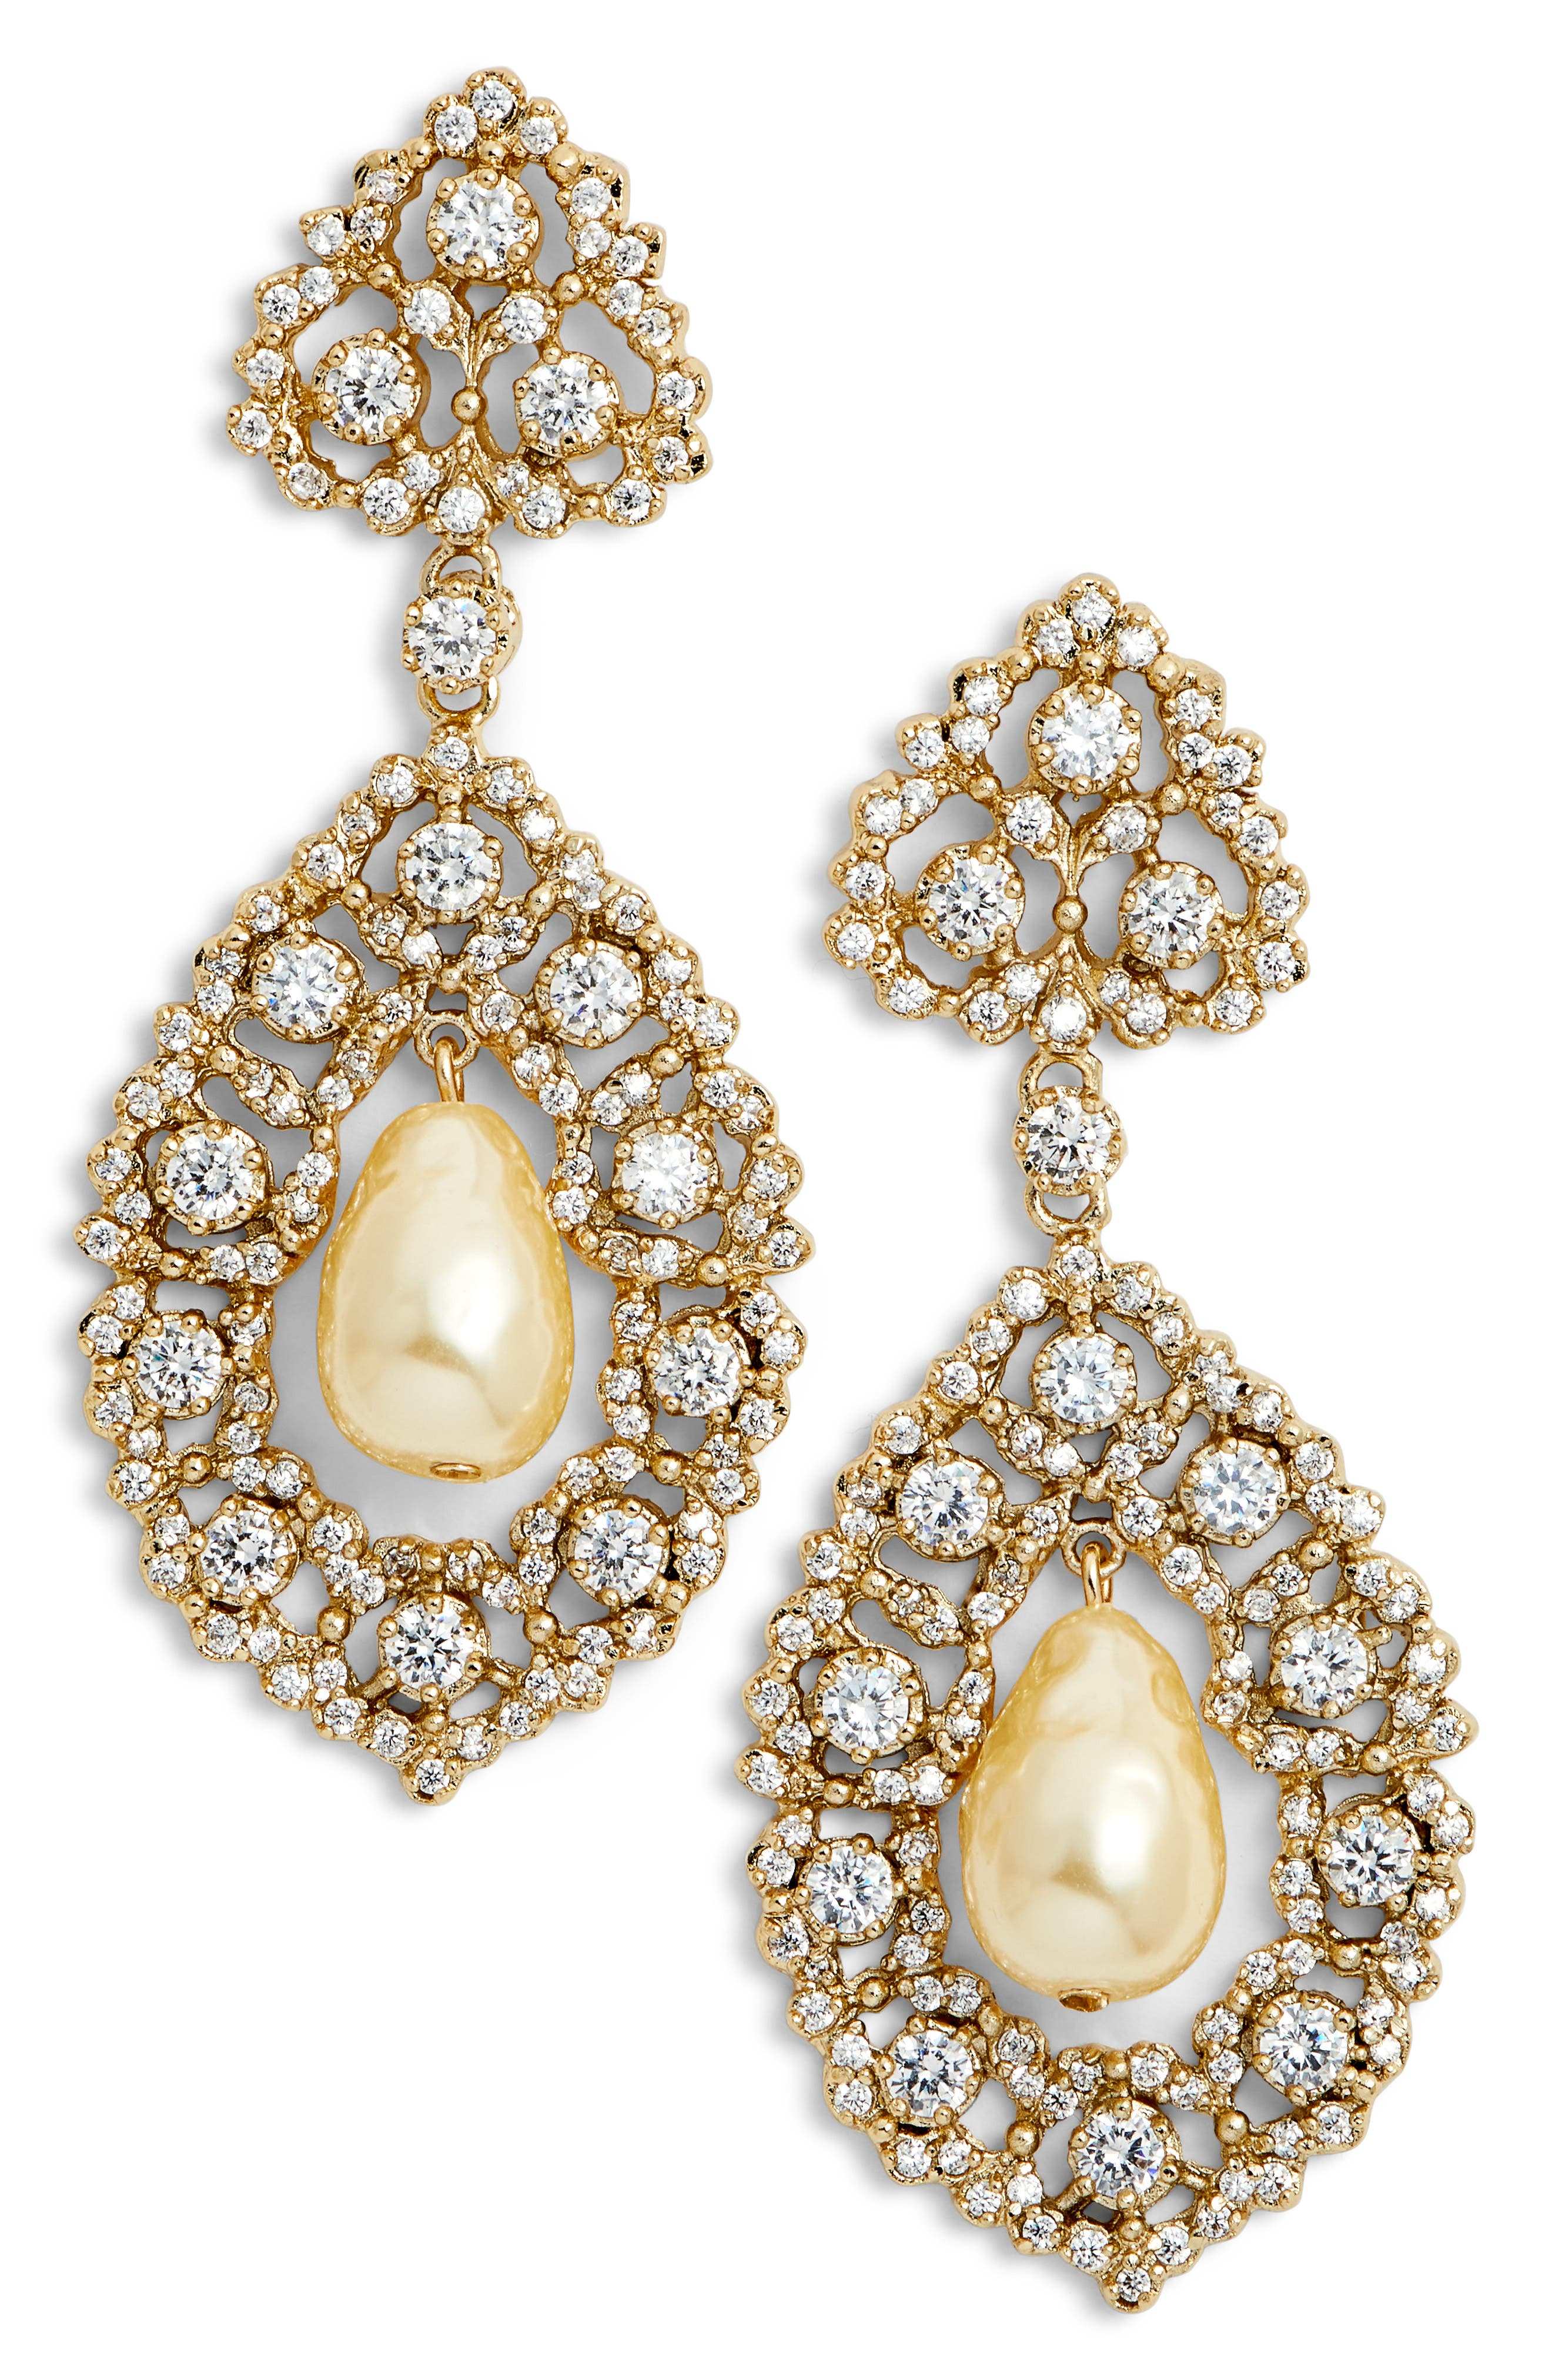 Rococo Double Drop Imitation Pearl Earrings,                             Main thumbnail 1, color,                             IVORY PEARL/ GOLD